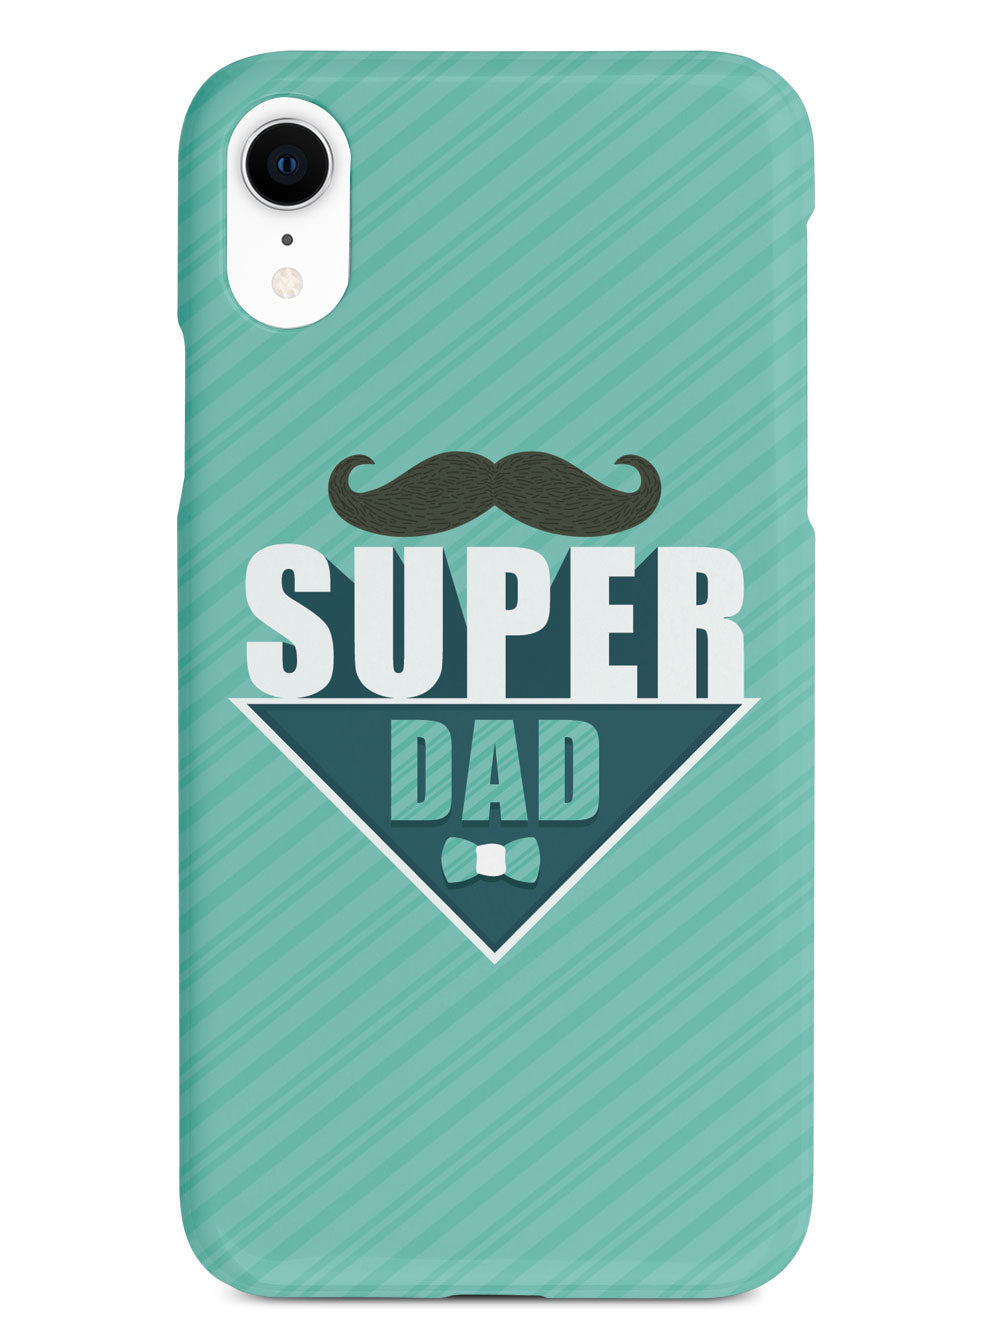 Super Dad - White Case